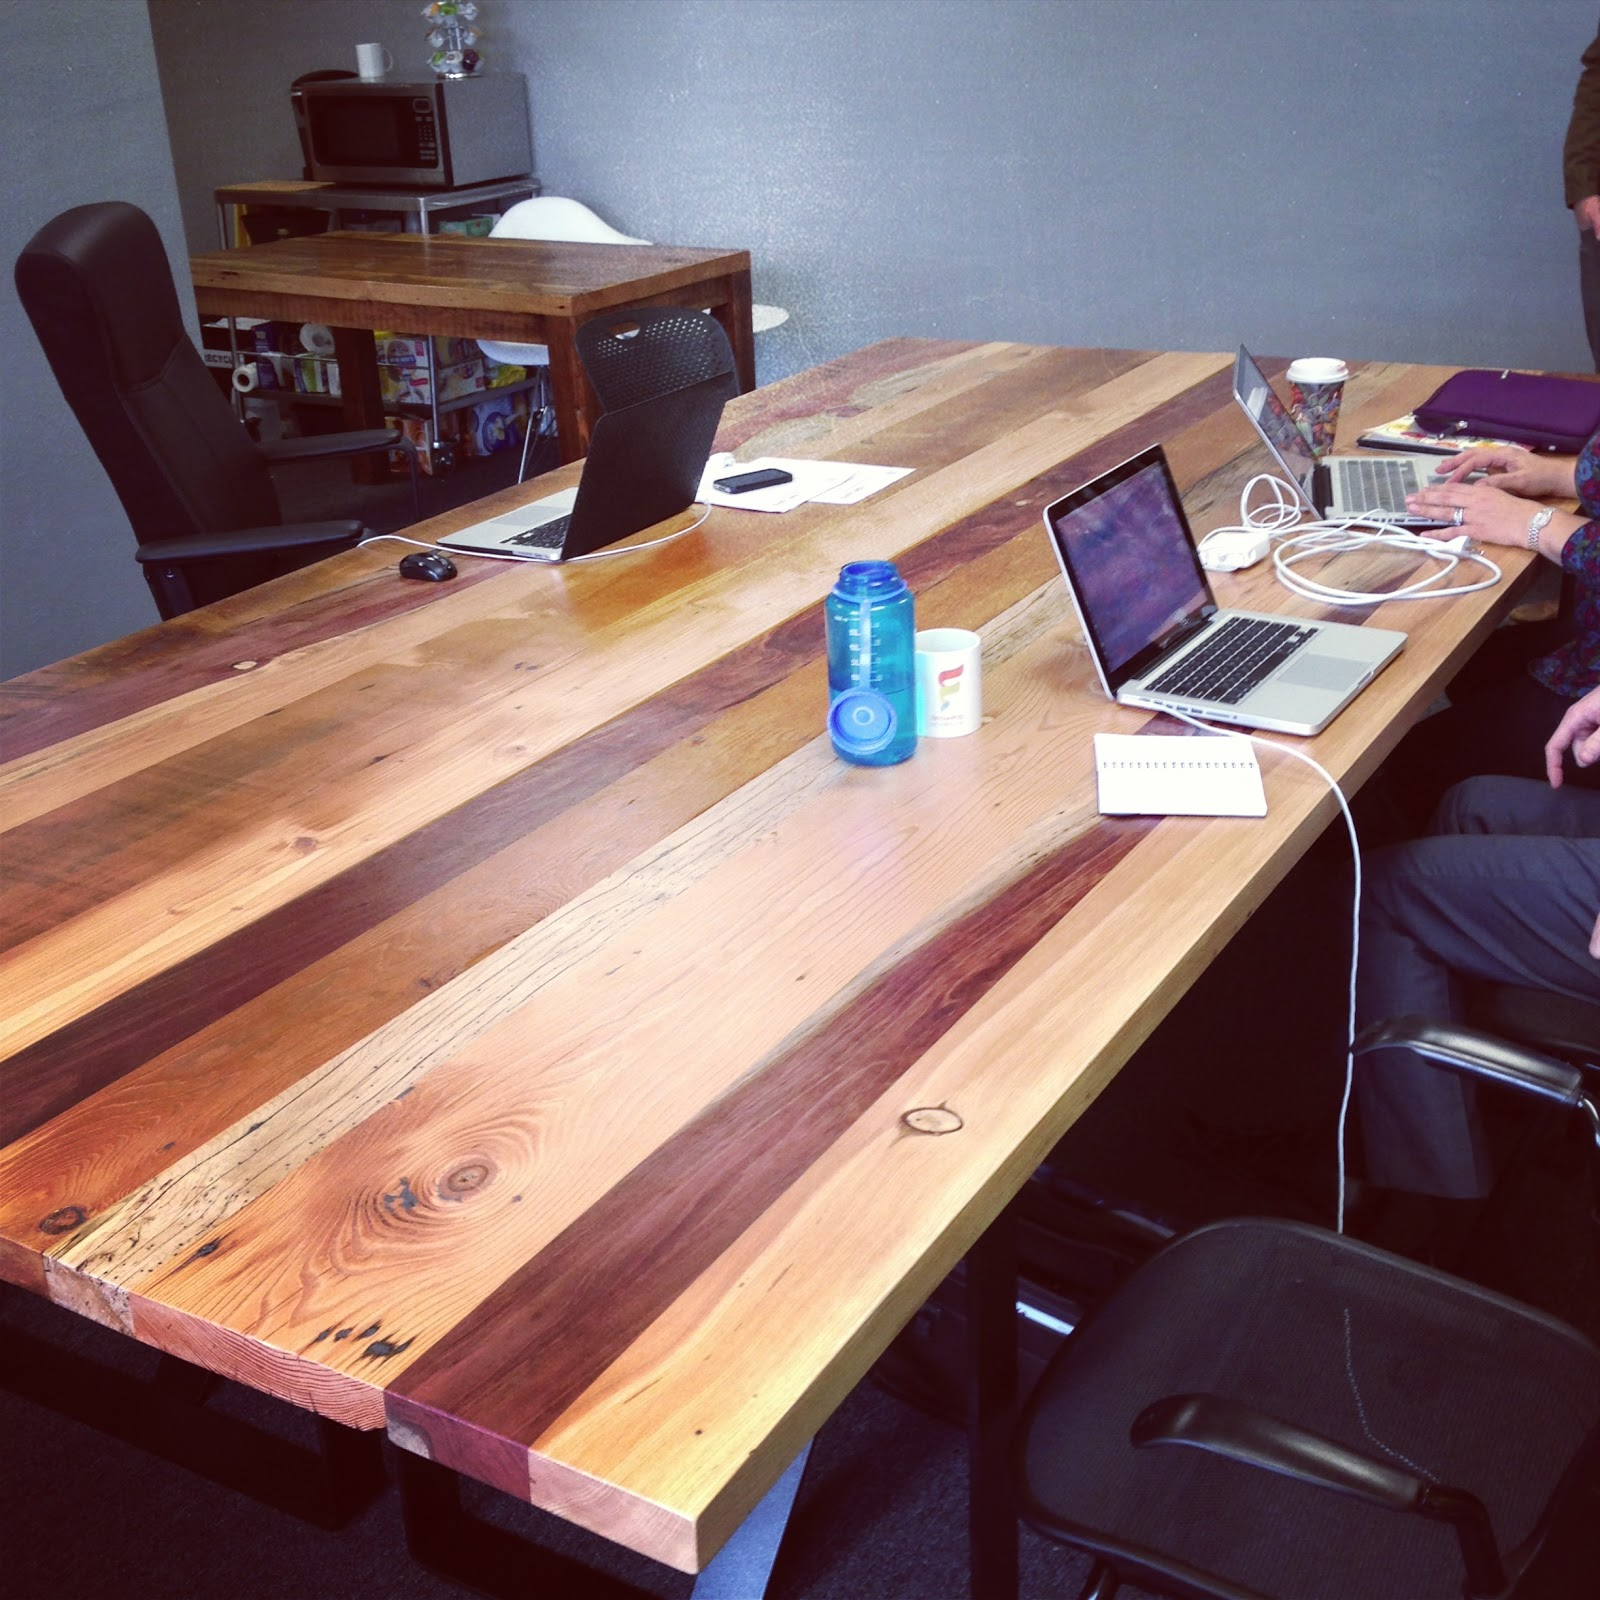 Reclaimed wood conference tables - You Can See The Table Put Together In The Last Picture This Patchwork Table Features Redwood And Cedar From Slabs And Maple And Doug Fir From Boards